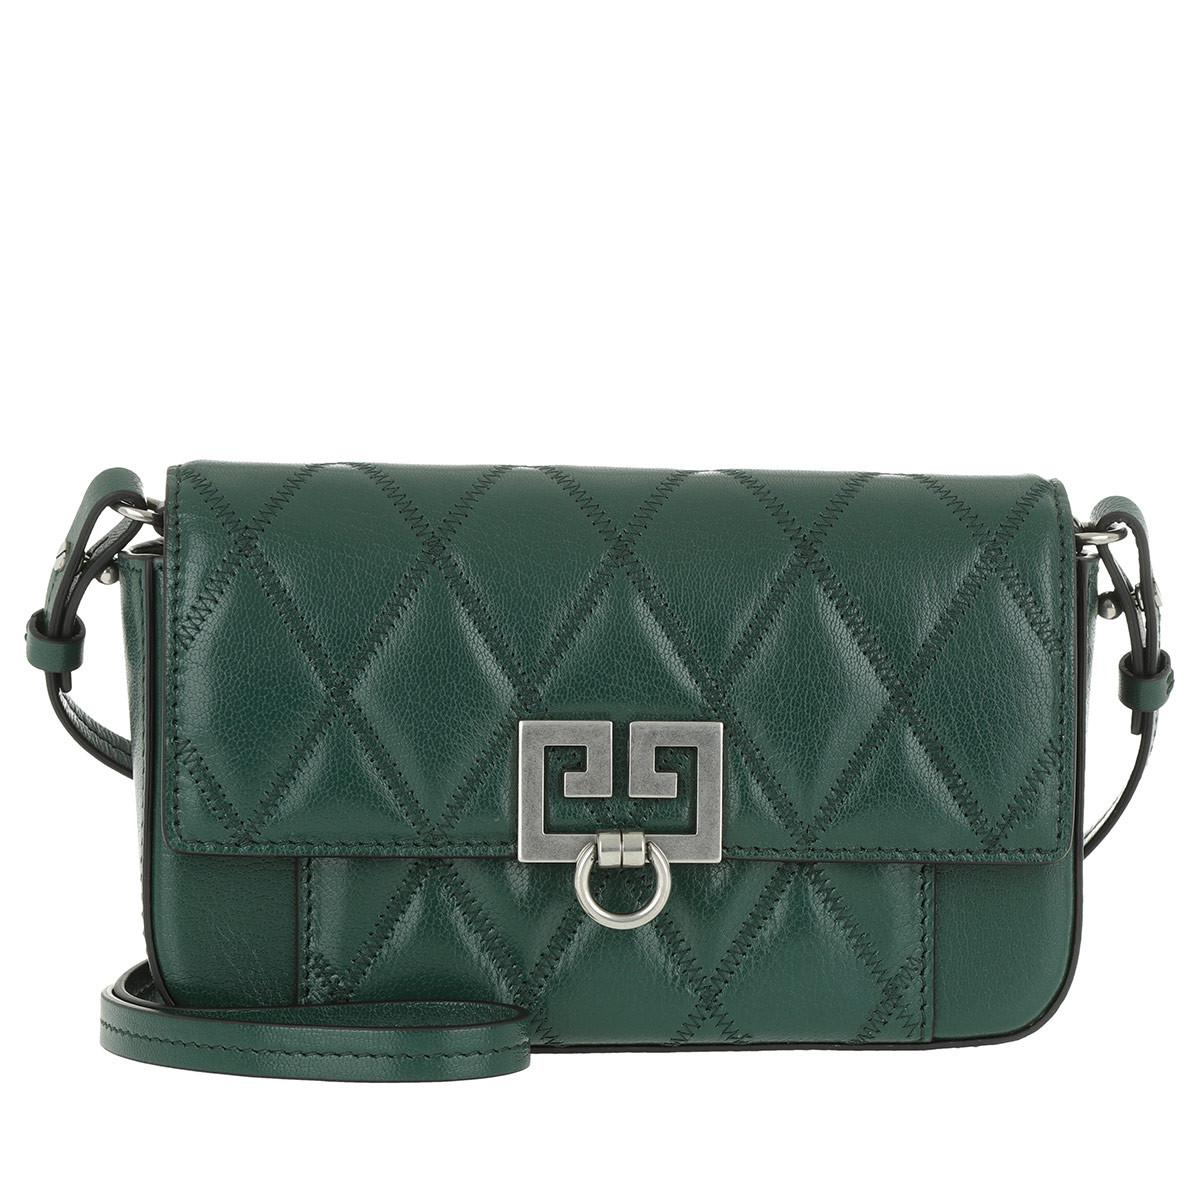 838684e2e498 Givenchy Mini Pocket Bag Diamond Quilted Leather Forest Green in ...